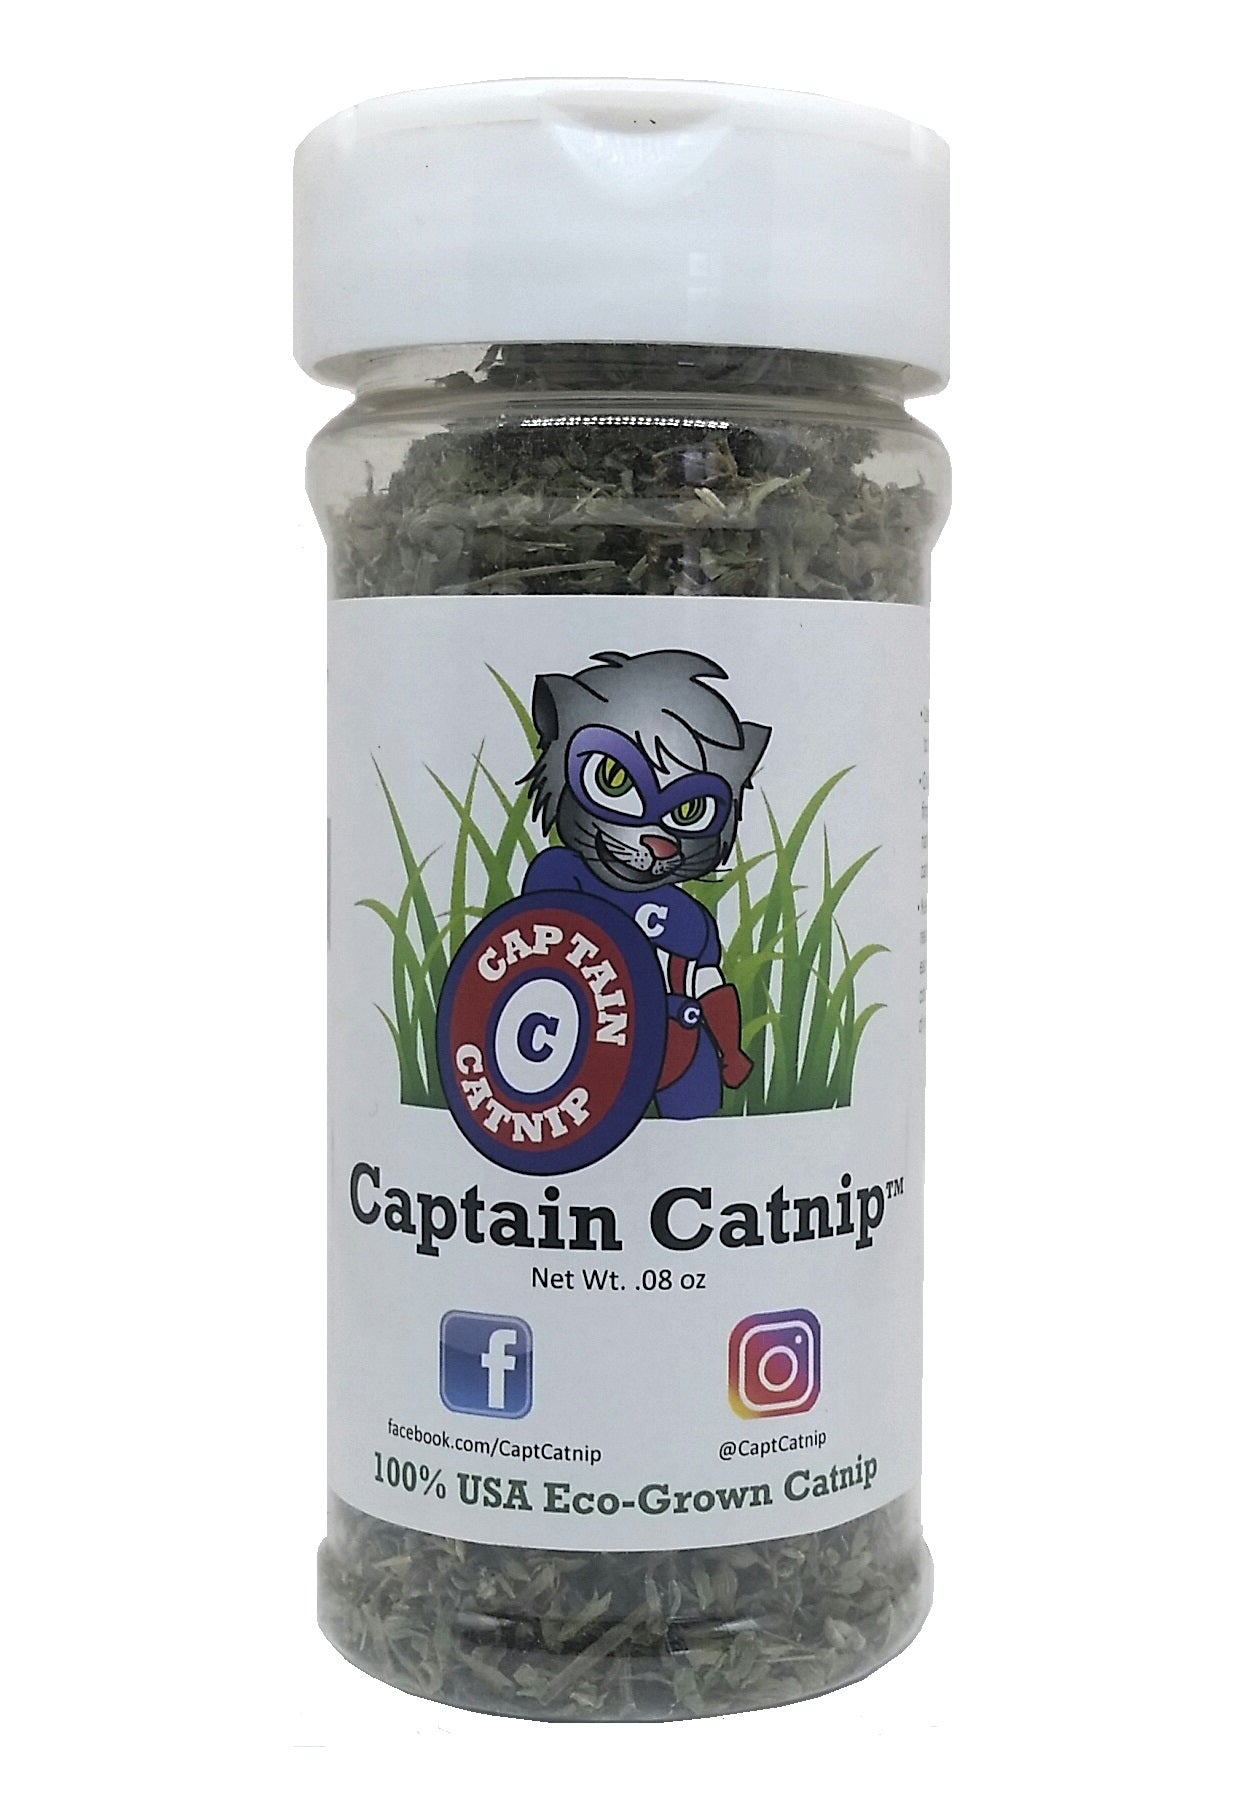 Organic Catnip Farm Fresh Potent Cats Love it